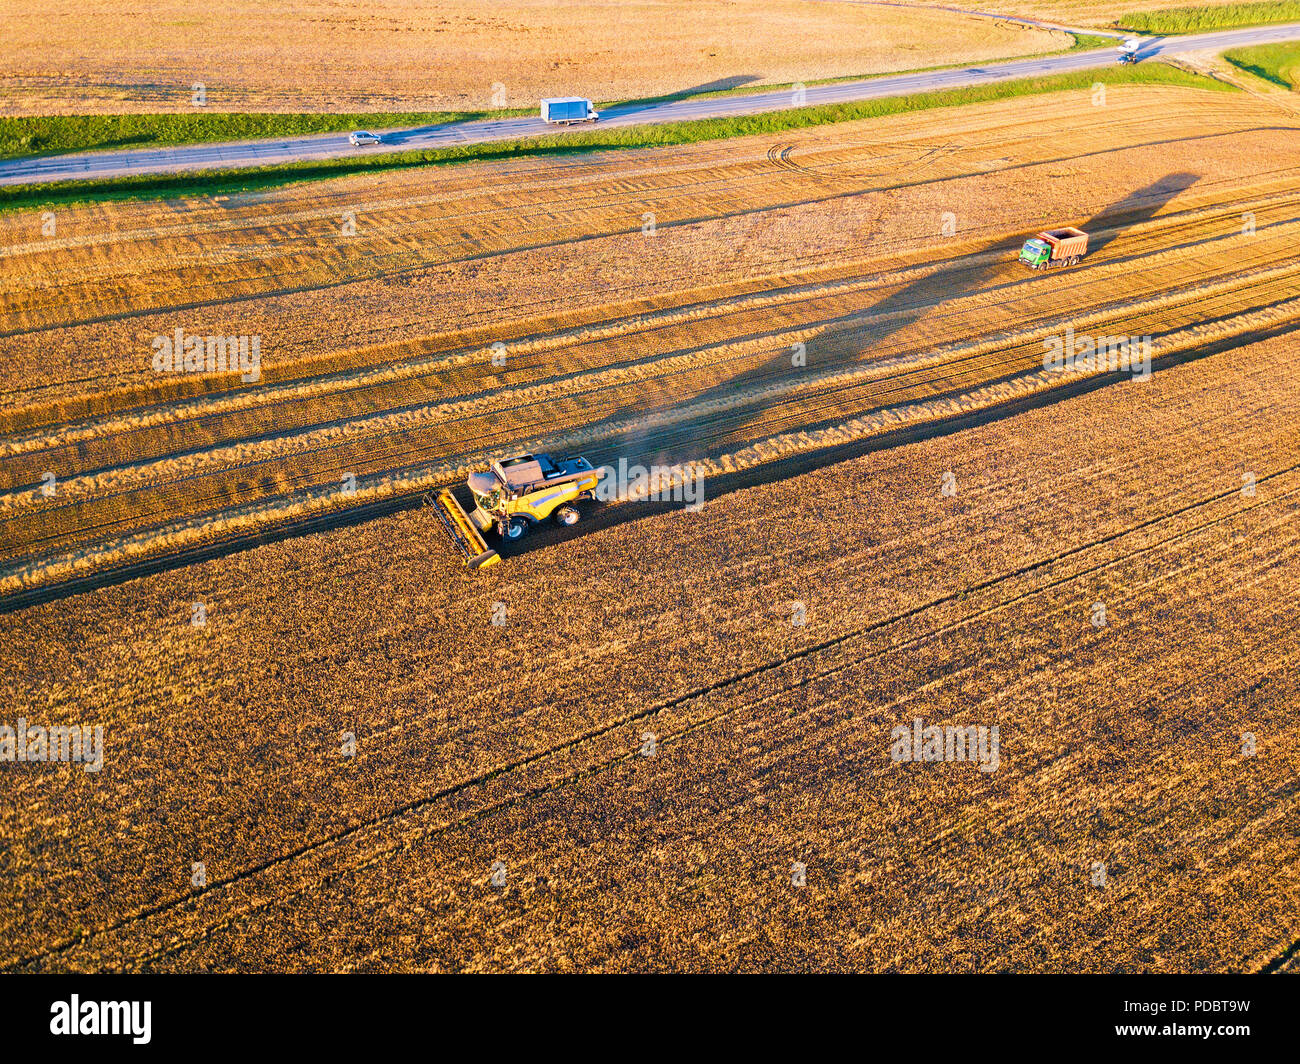 Harvester machine working in field. Combine machine harvesting agriculture golden ripe wheat field. Aerial view on the combine working on large rye fi - Stock Image